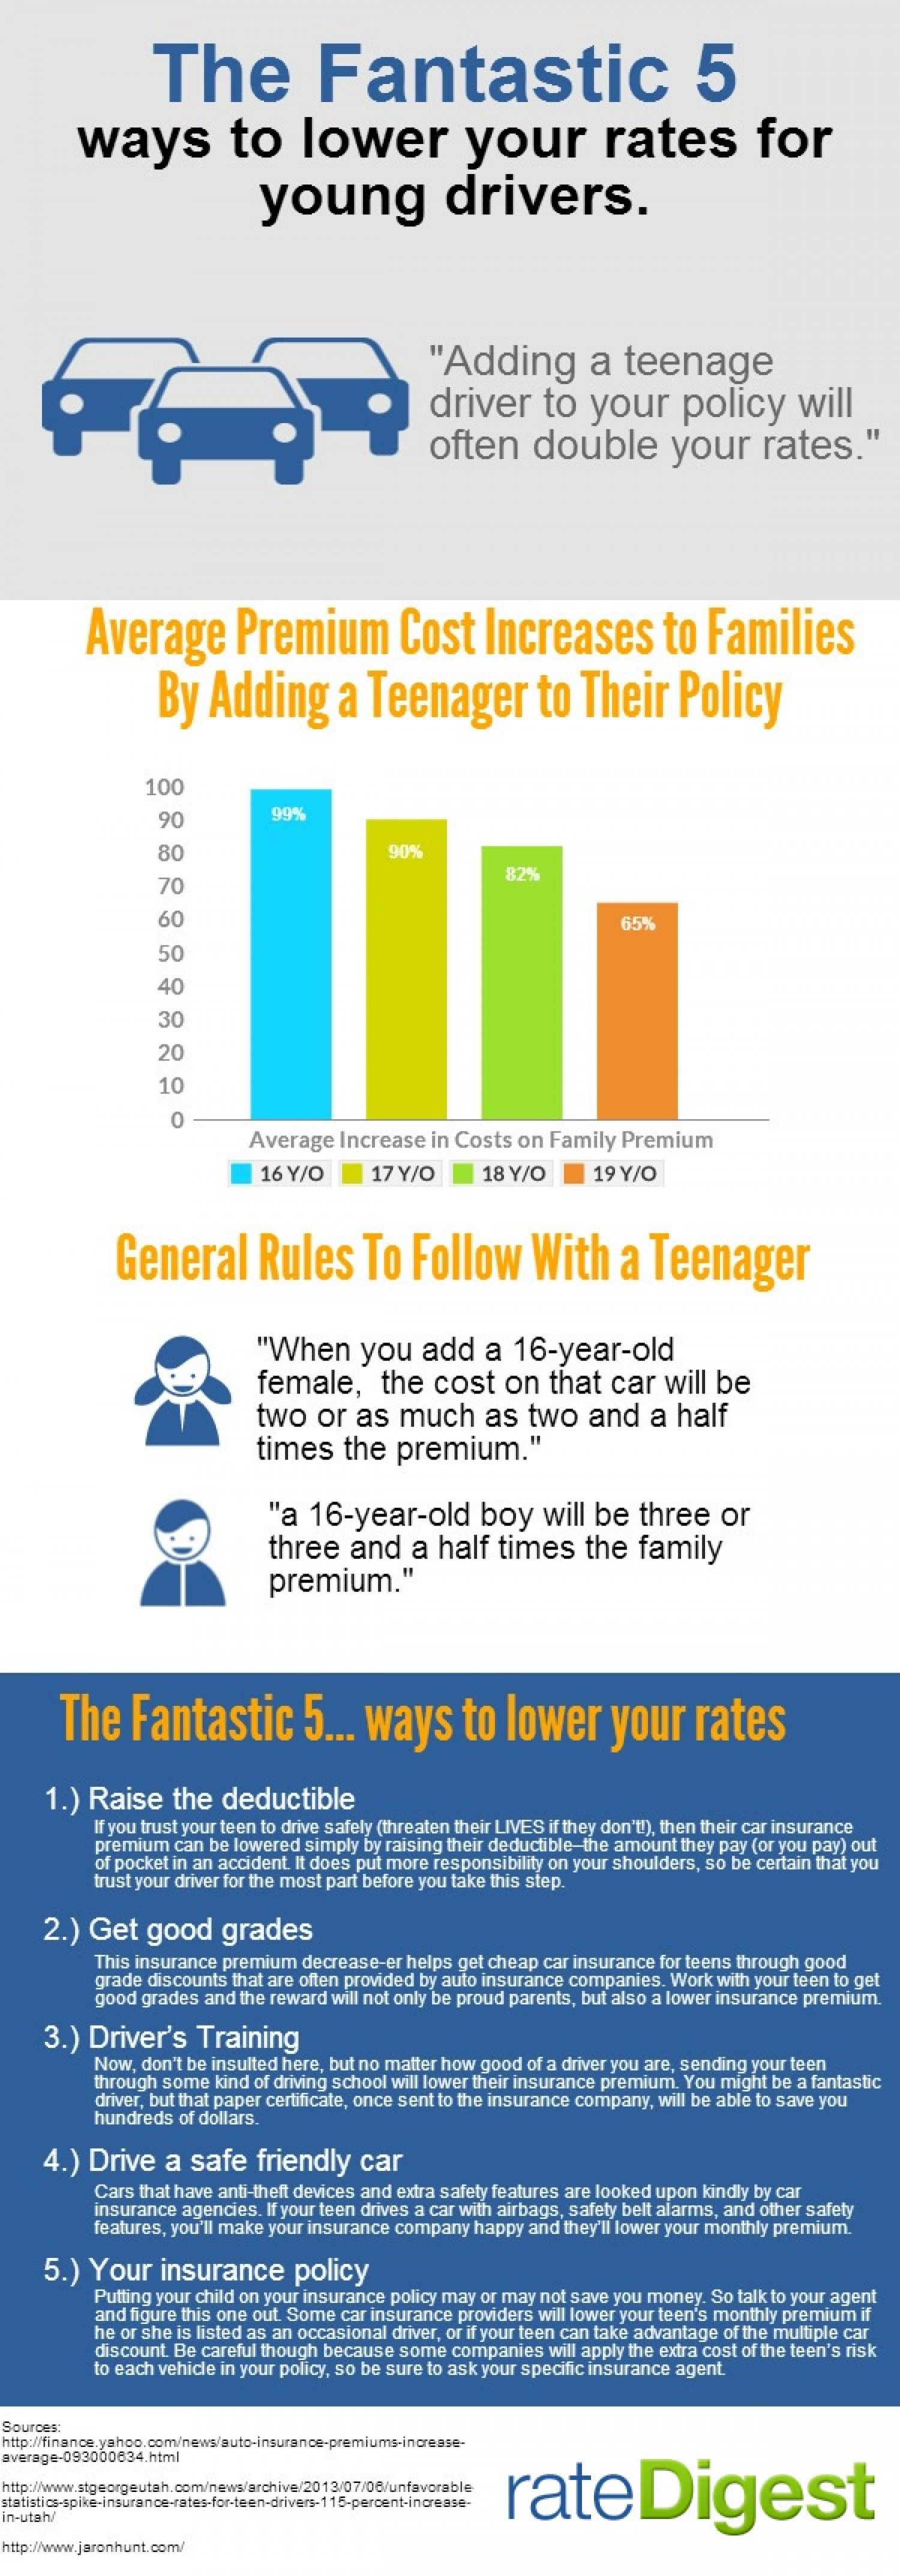 The Fantastic 5 Ways To Lower Car Insurance Rates For Young